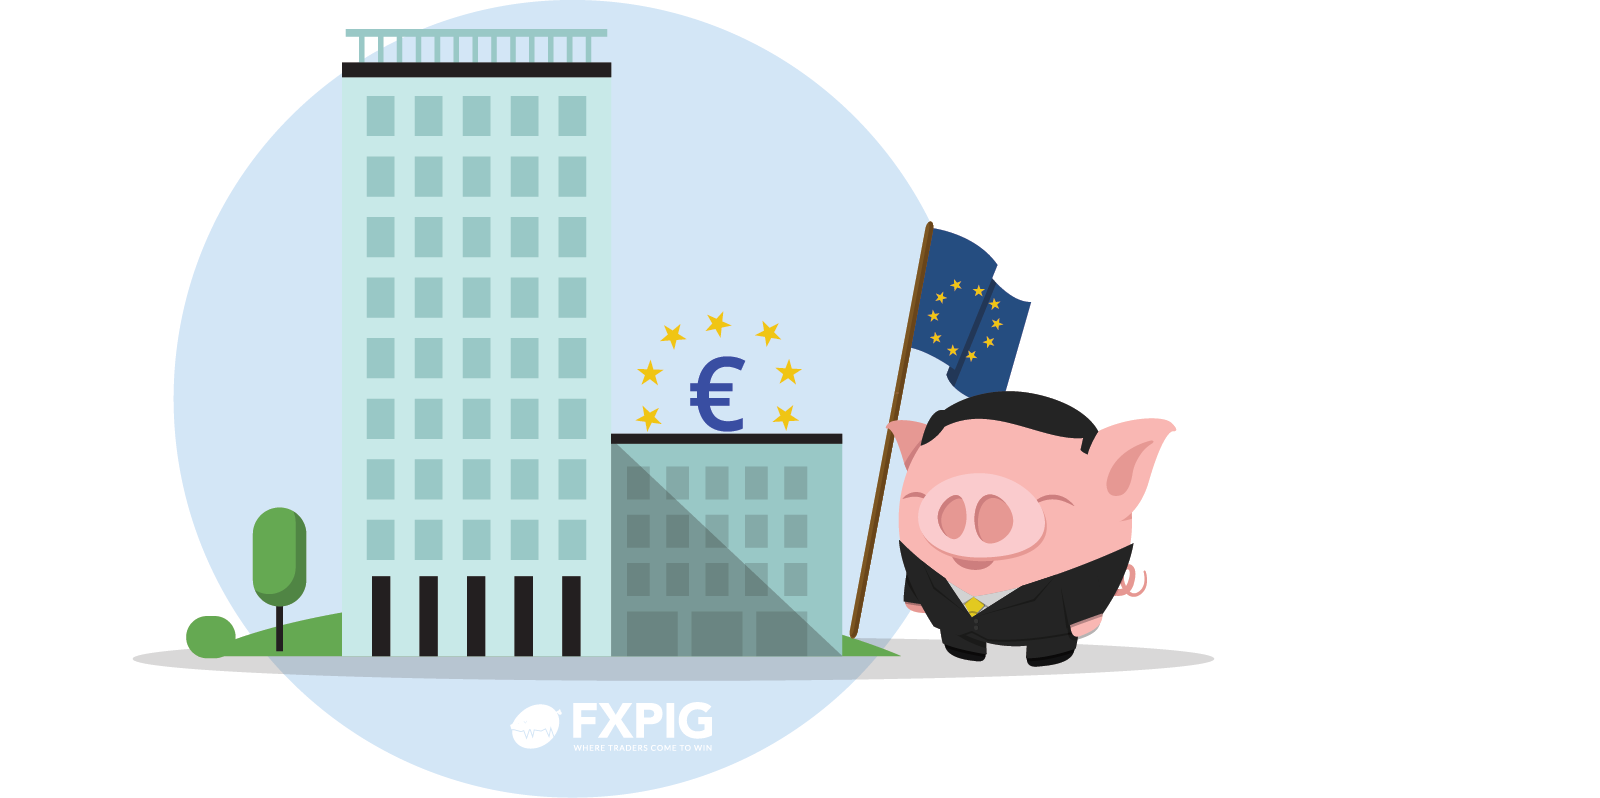 ECB_meeting_uneventful_Forex_FXPIG